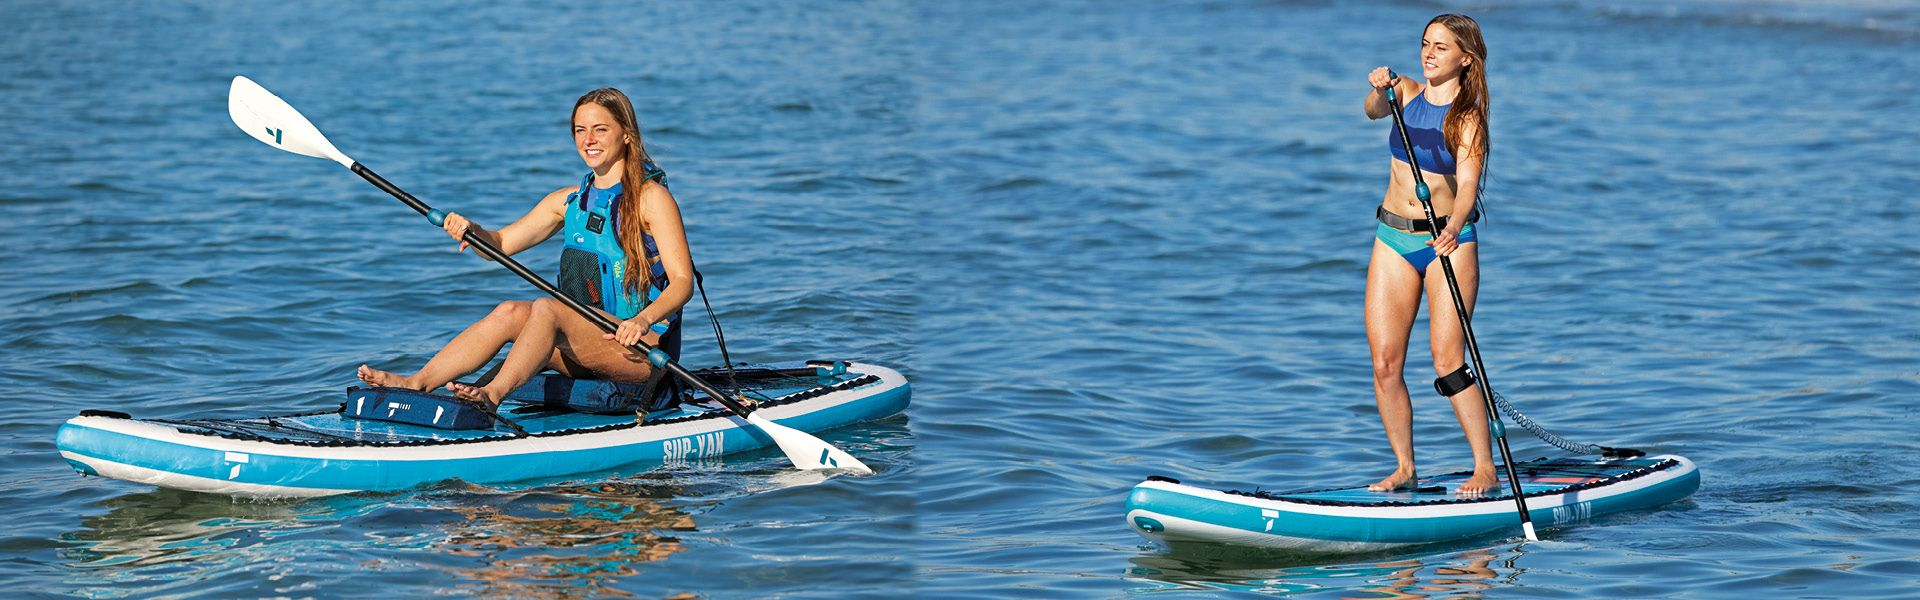 Tahe 10-6 SUP-YAK in both Kayak and SUP Only version